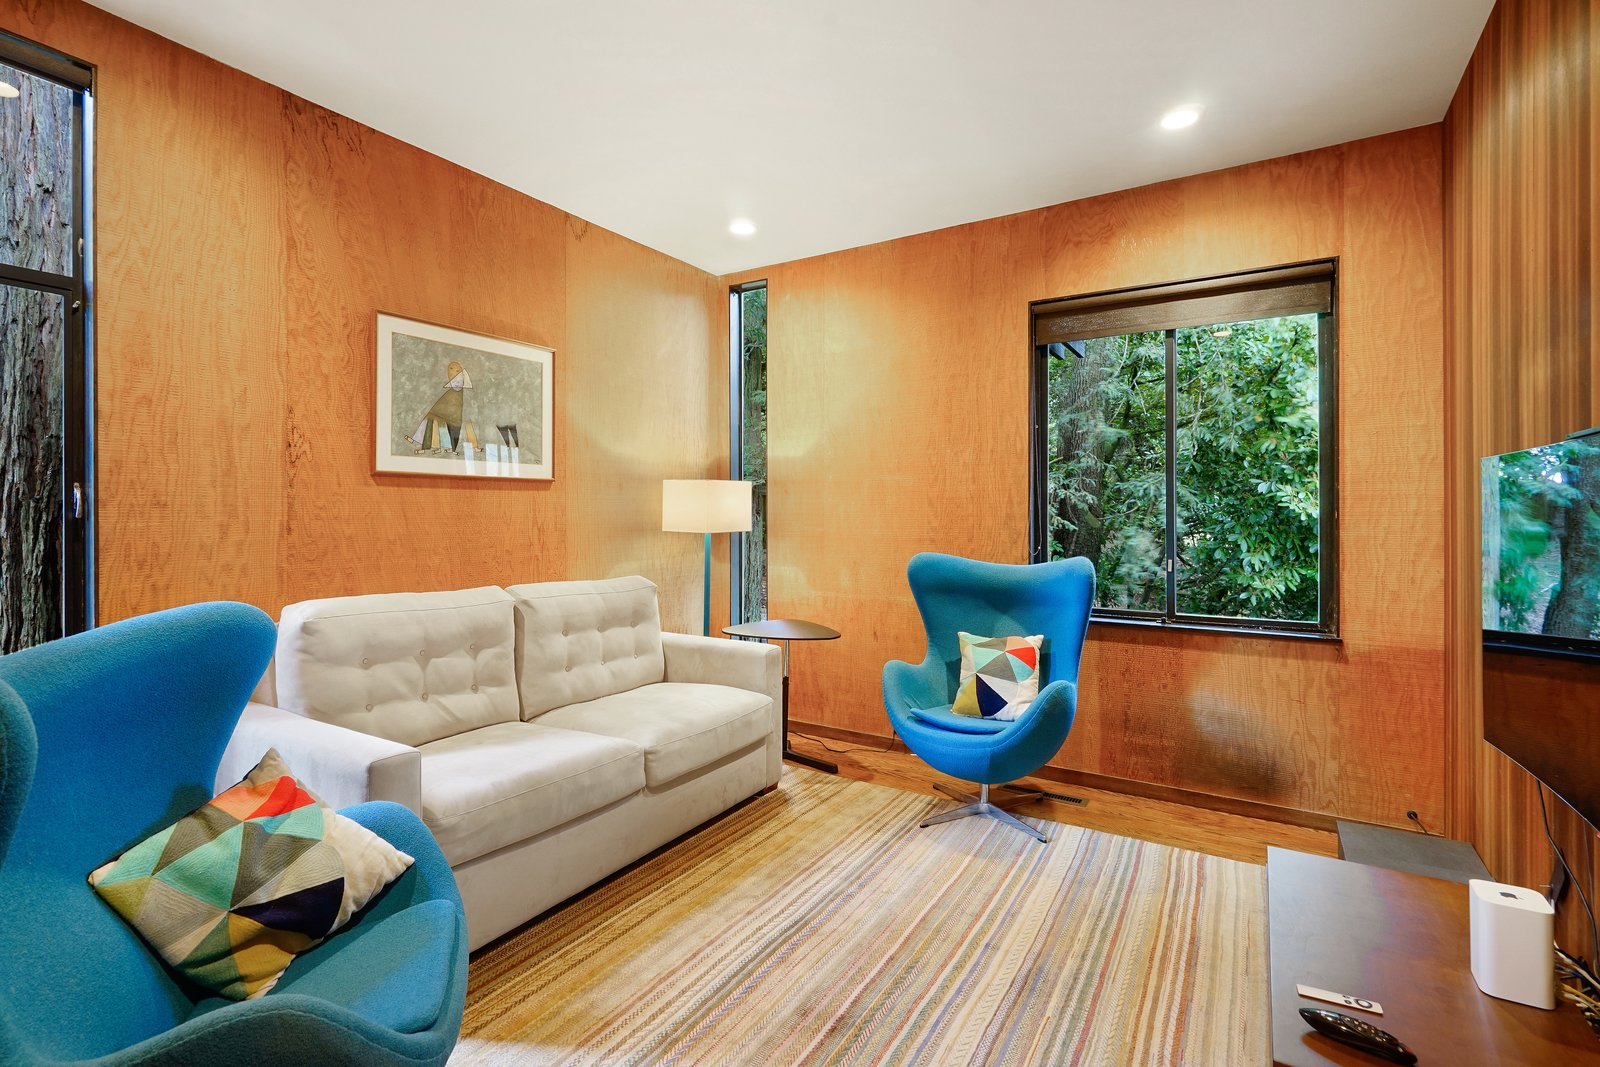 Living Room, Sofa, Chair, Rug Floor, Medium Hardwood Floor, End Tables, Floor Lighting, and Recessed Lighting A sitting room.  Photo 11 of 17 in This Knockout Midcentury in the Bay Area Will Run You $1.9M